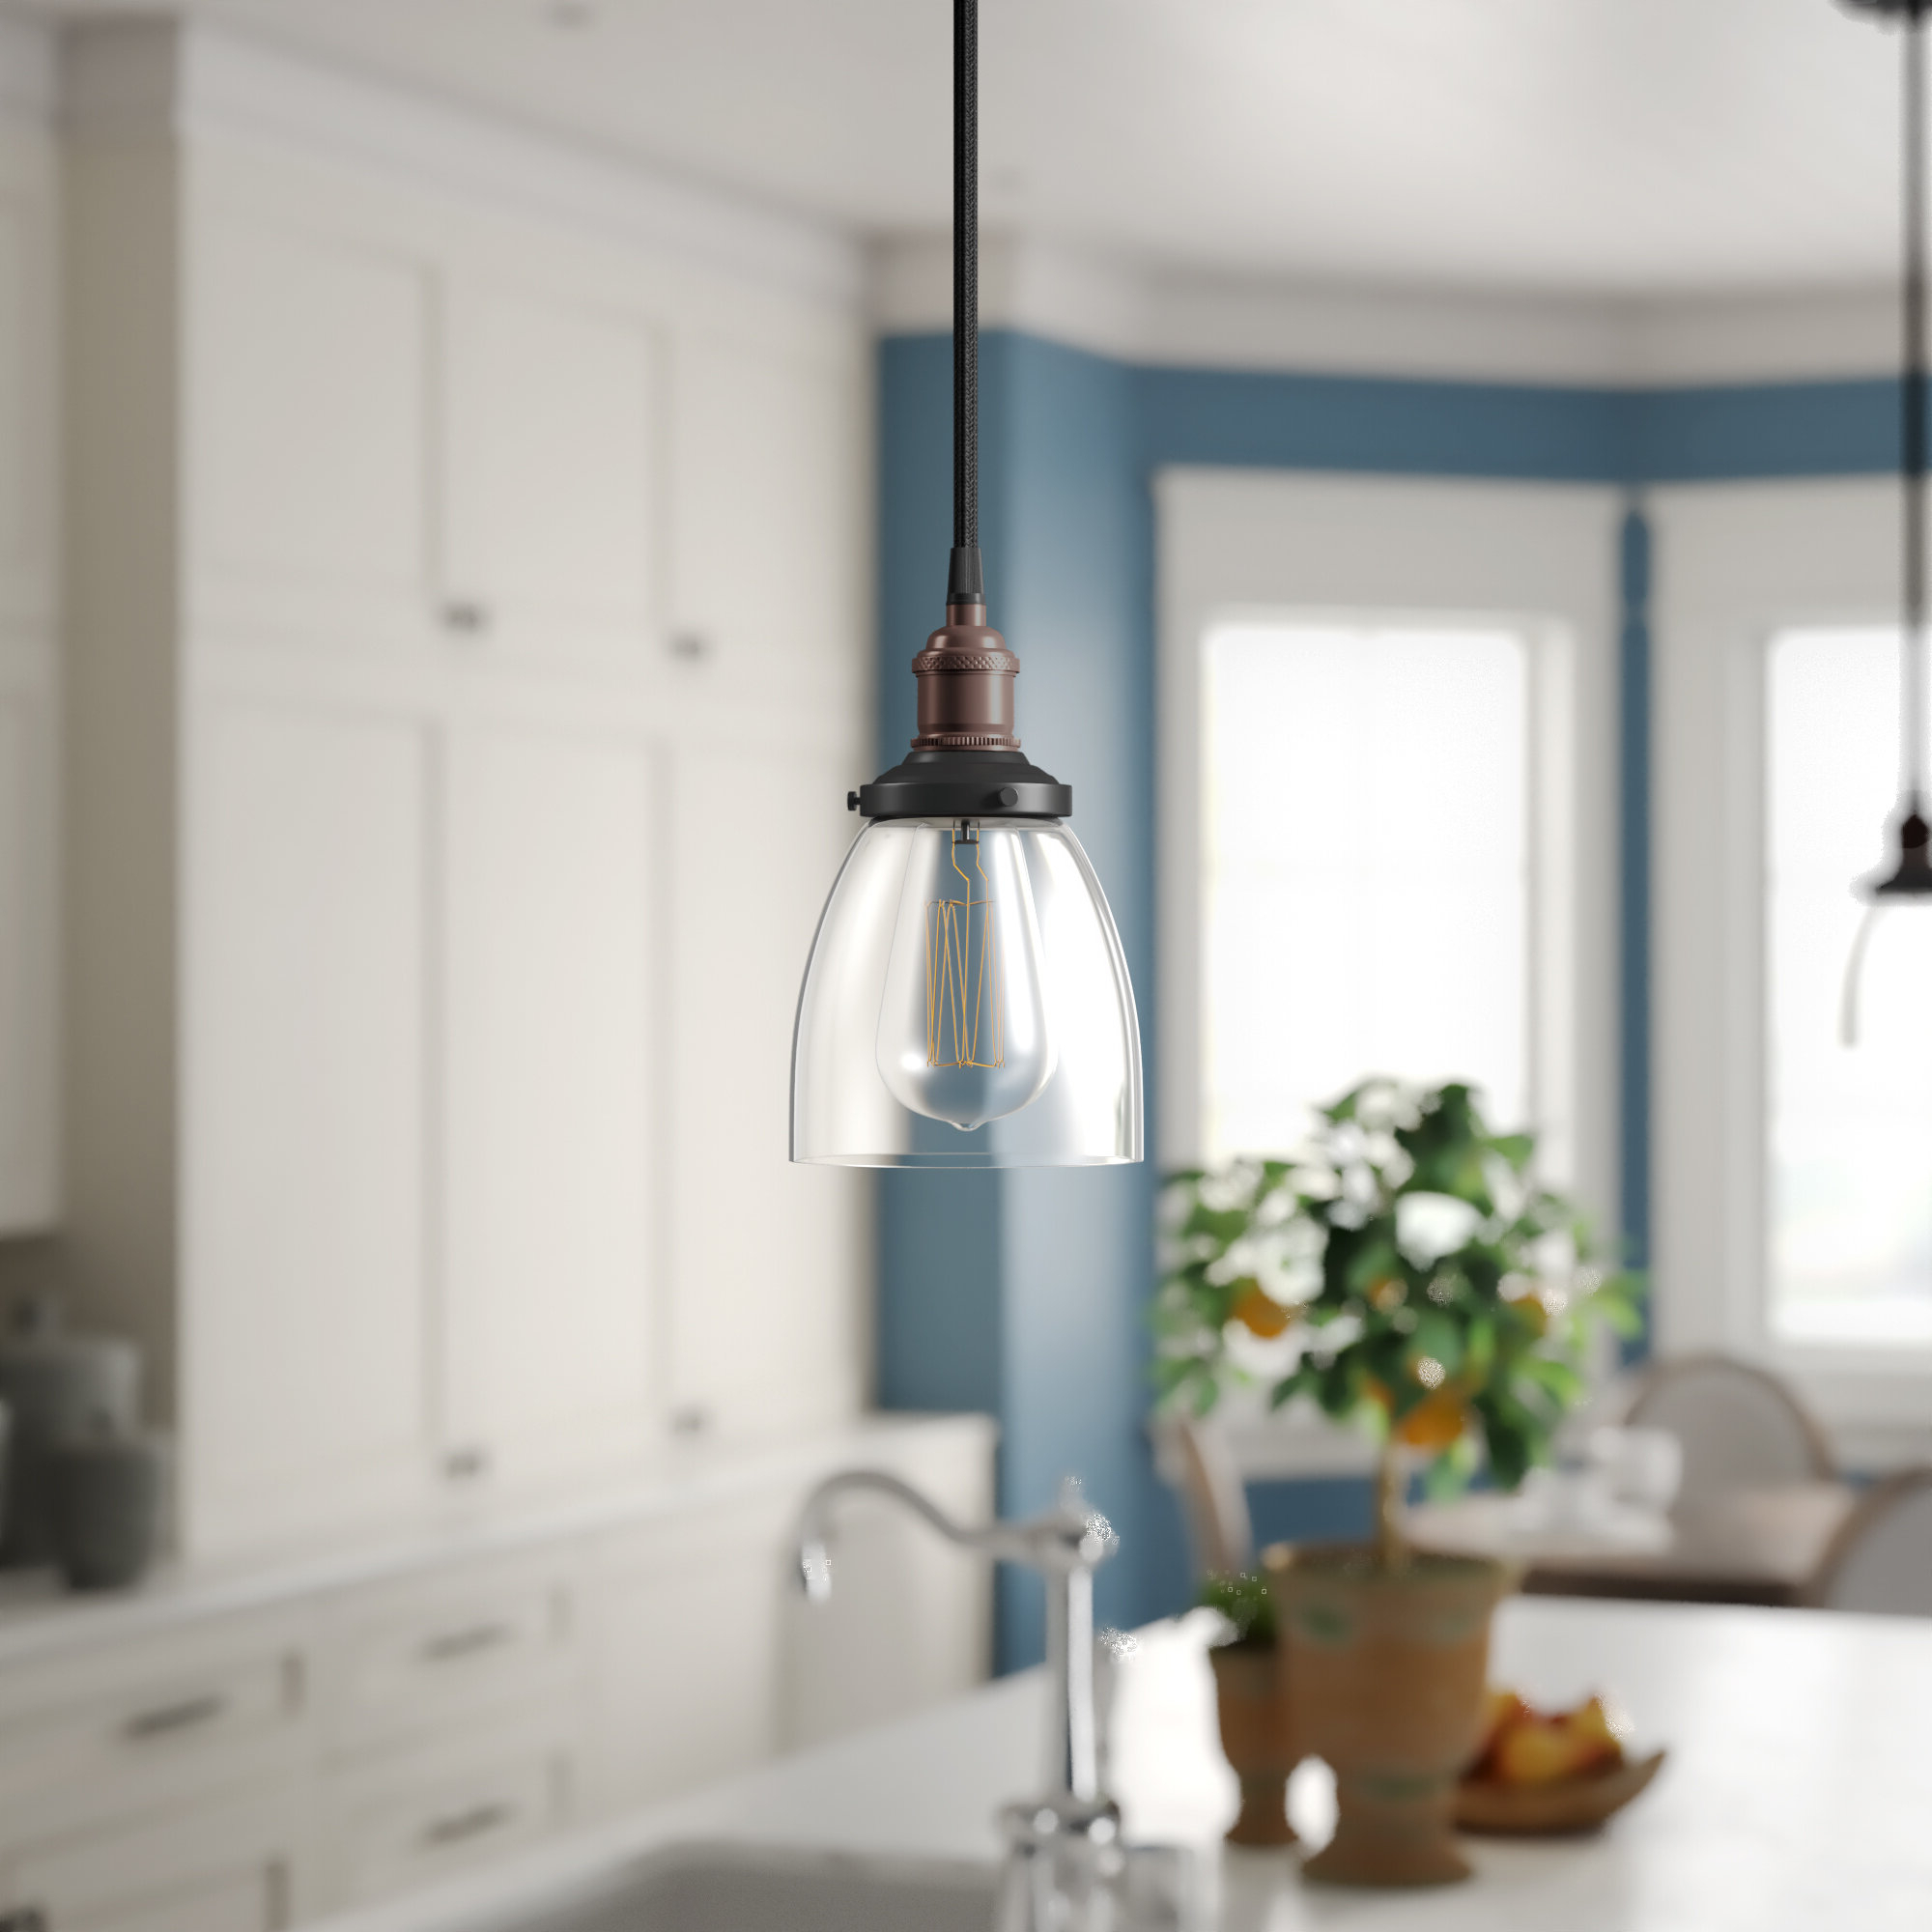 Goldie 1 Light Single Bell Pendants Throughout 2019 Sandy Springs 1 Light Single Bell Pendant (View 13 of 25)